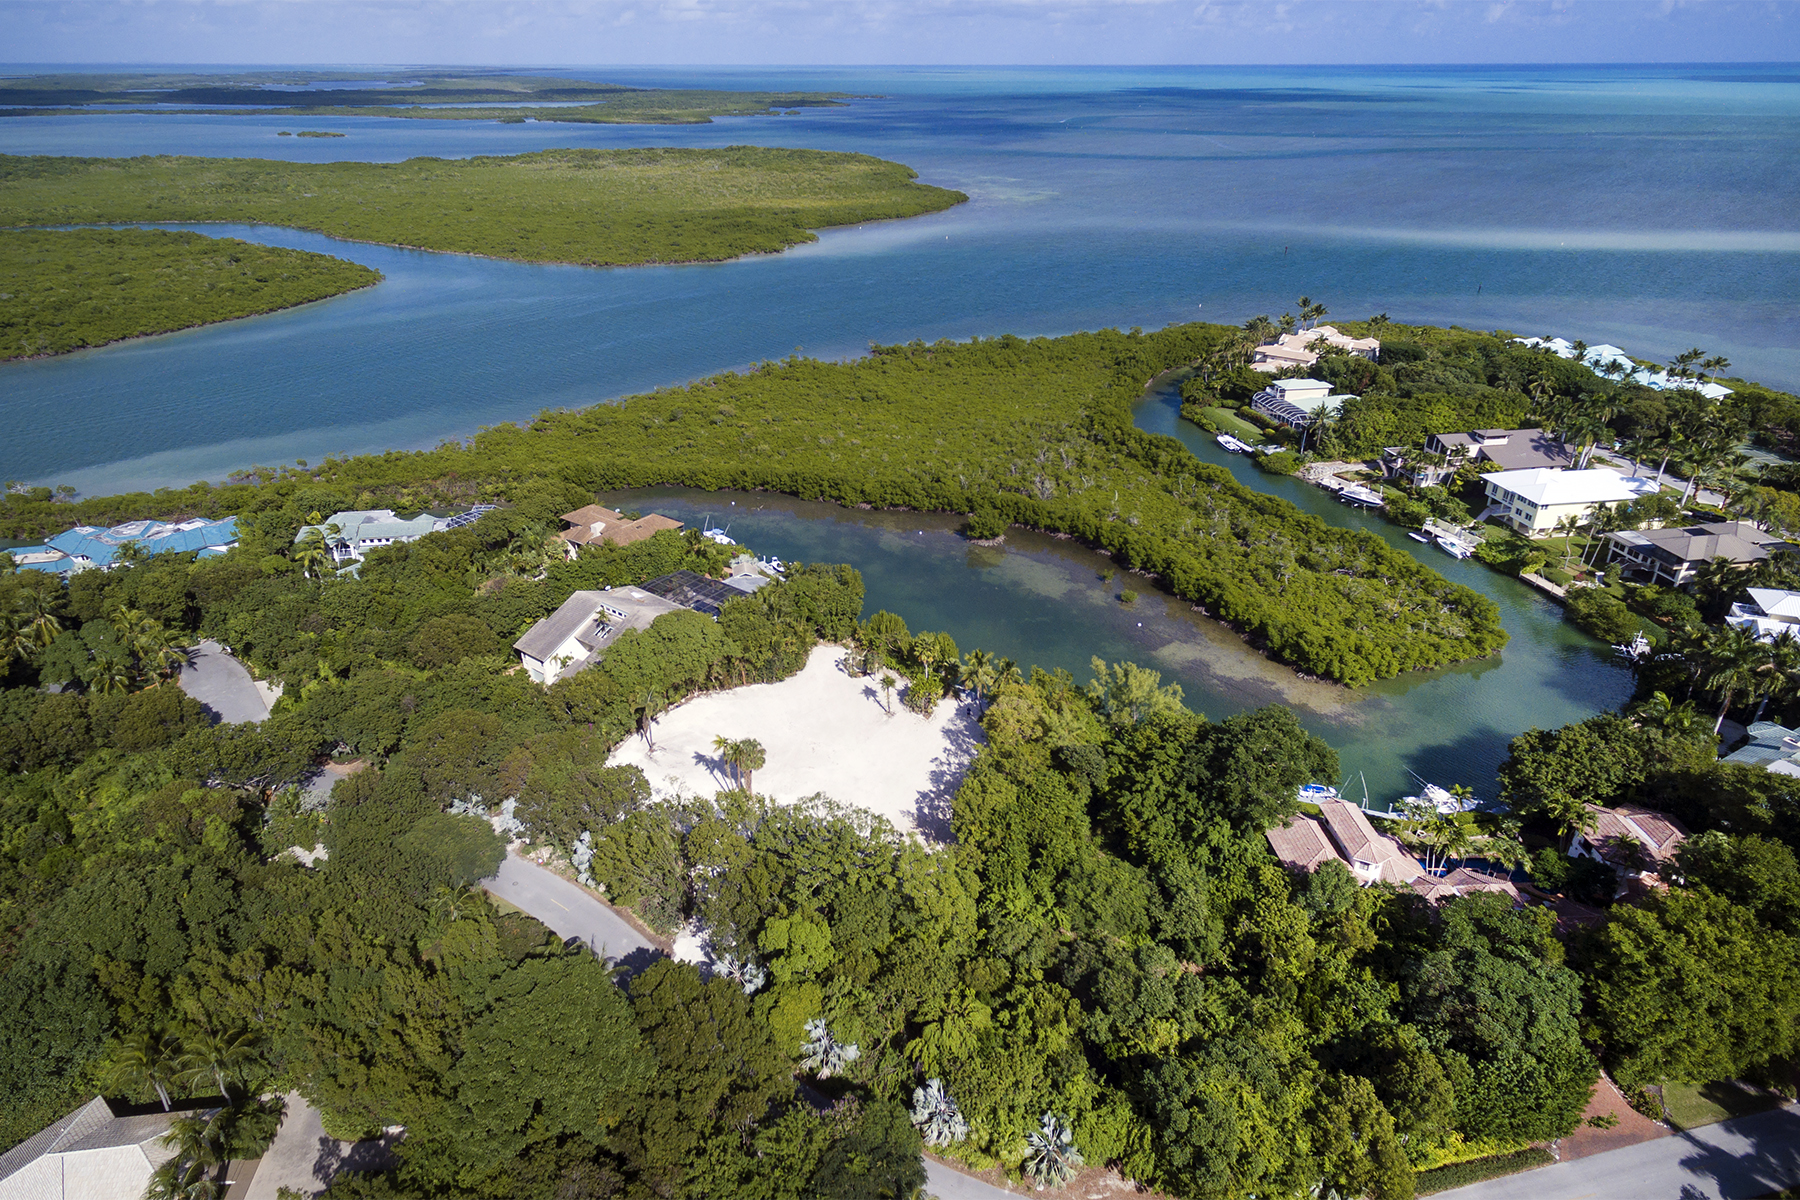 Arazi için Satış at Expansive Location to Build Your Dream Home at Ocean Reef 40-42 Cardinal Lane Ocean Reef Community, Key Largo, Florida, 33037 Amerika Birleşik Devletleri